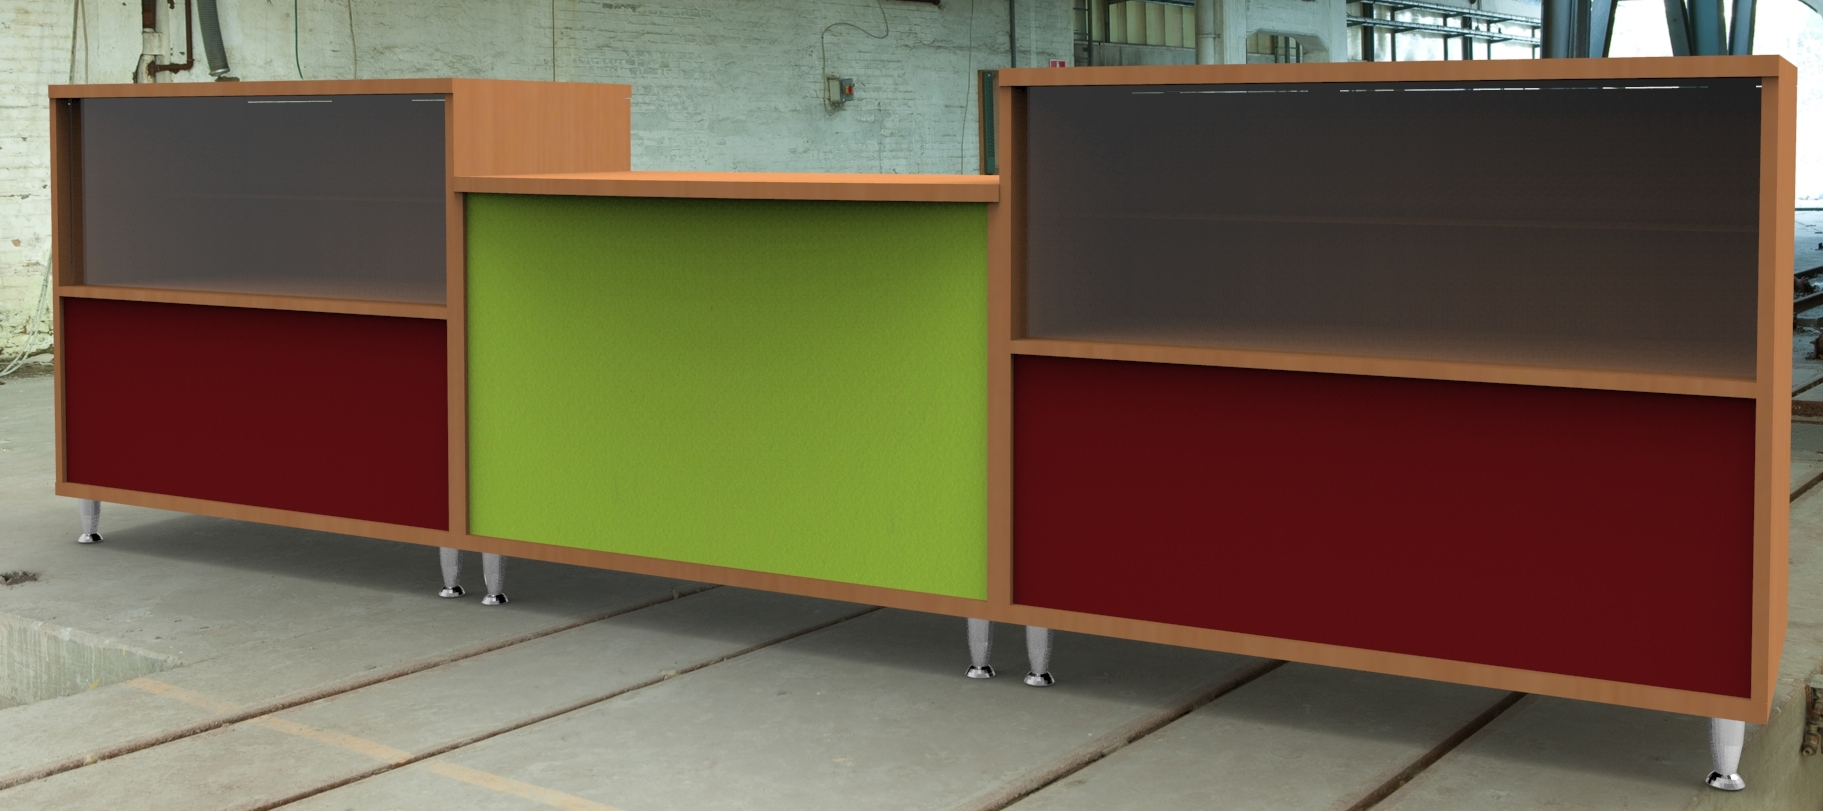 Image 7 Salon - Salon reception counter finished in Beech with Burgundy and Green